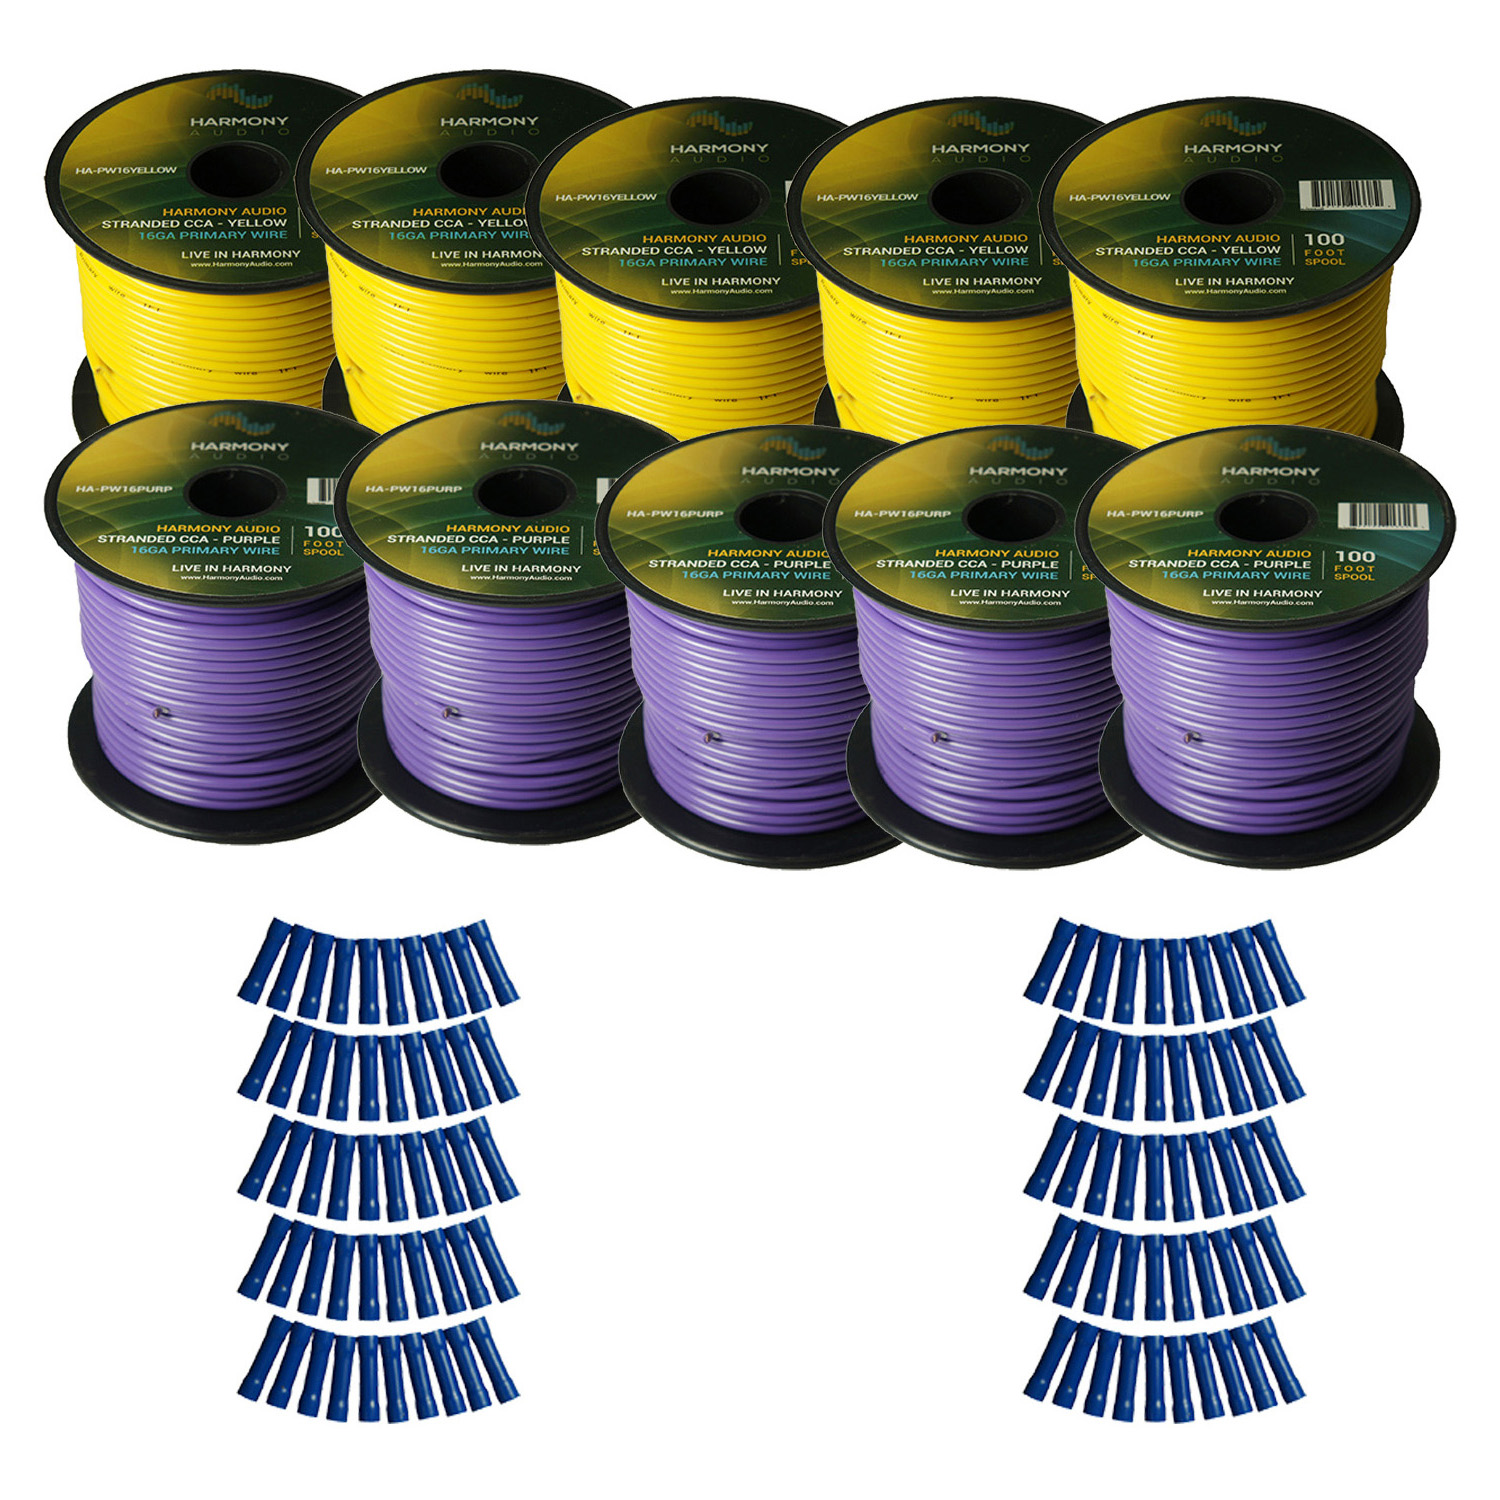 Harmony Audio Primary Single Conductor 16 Gauge Power or Ground Wire - 10 Rolls - 1000 Feet - Yellow & Purple for Car Audio / Trailer / Model Train / Remote